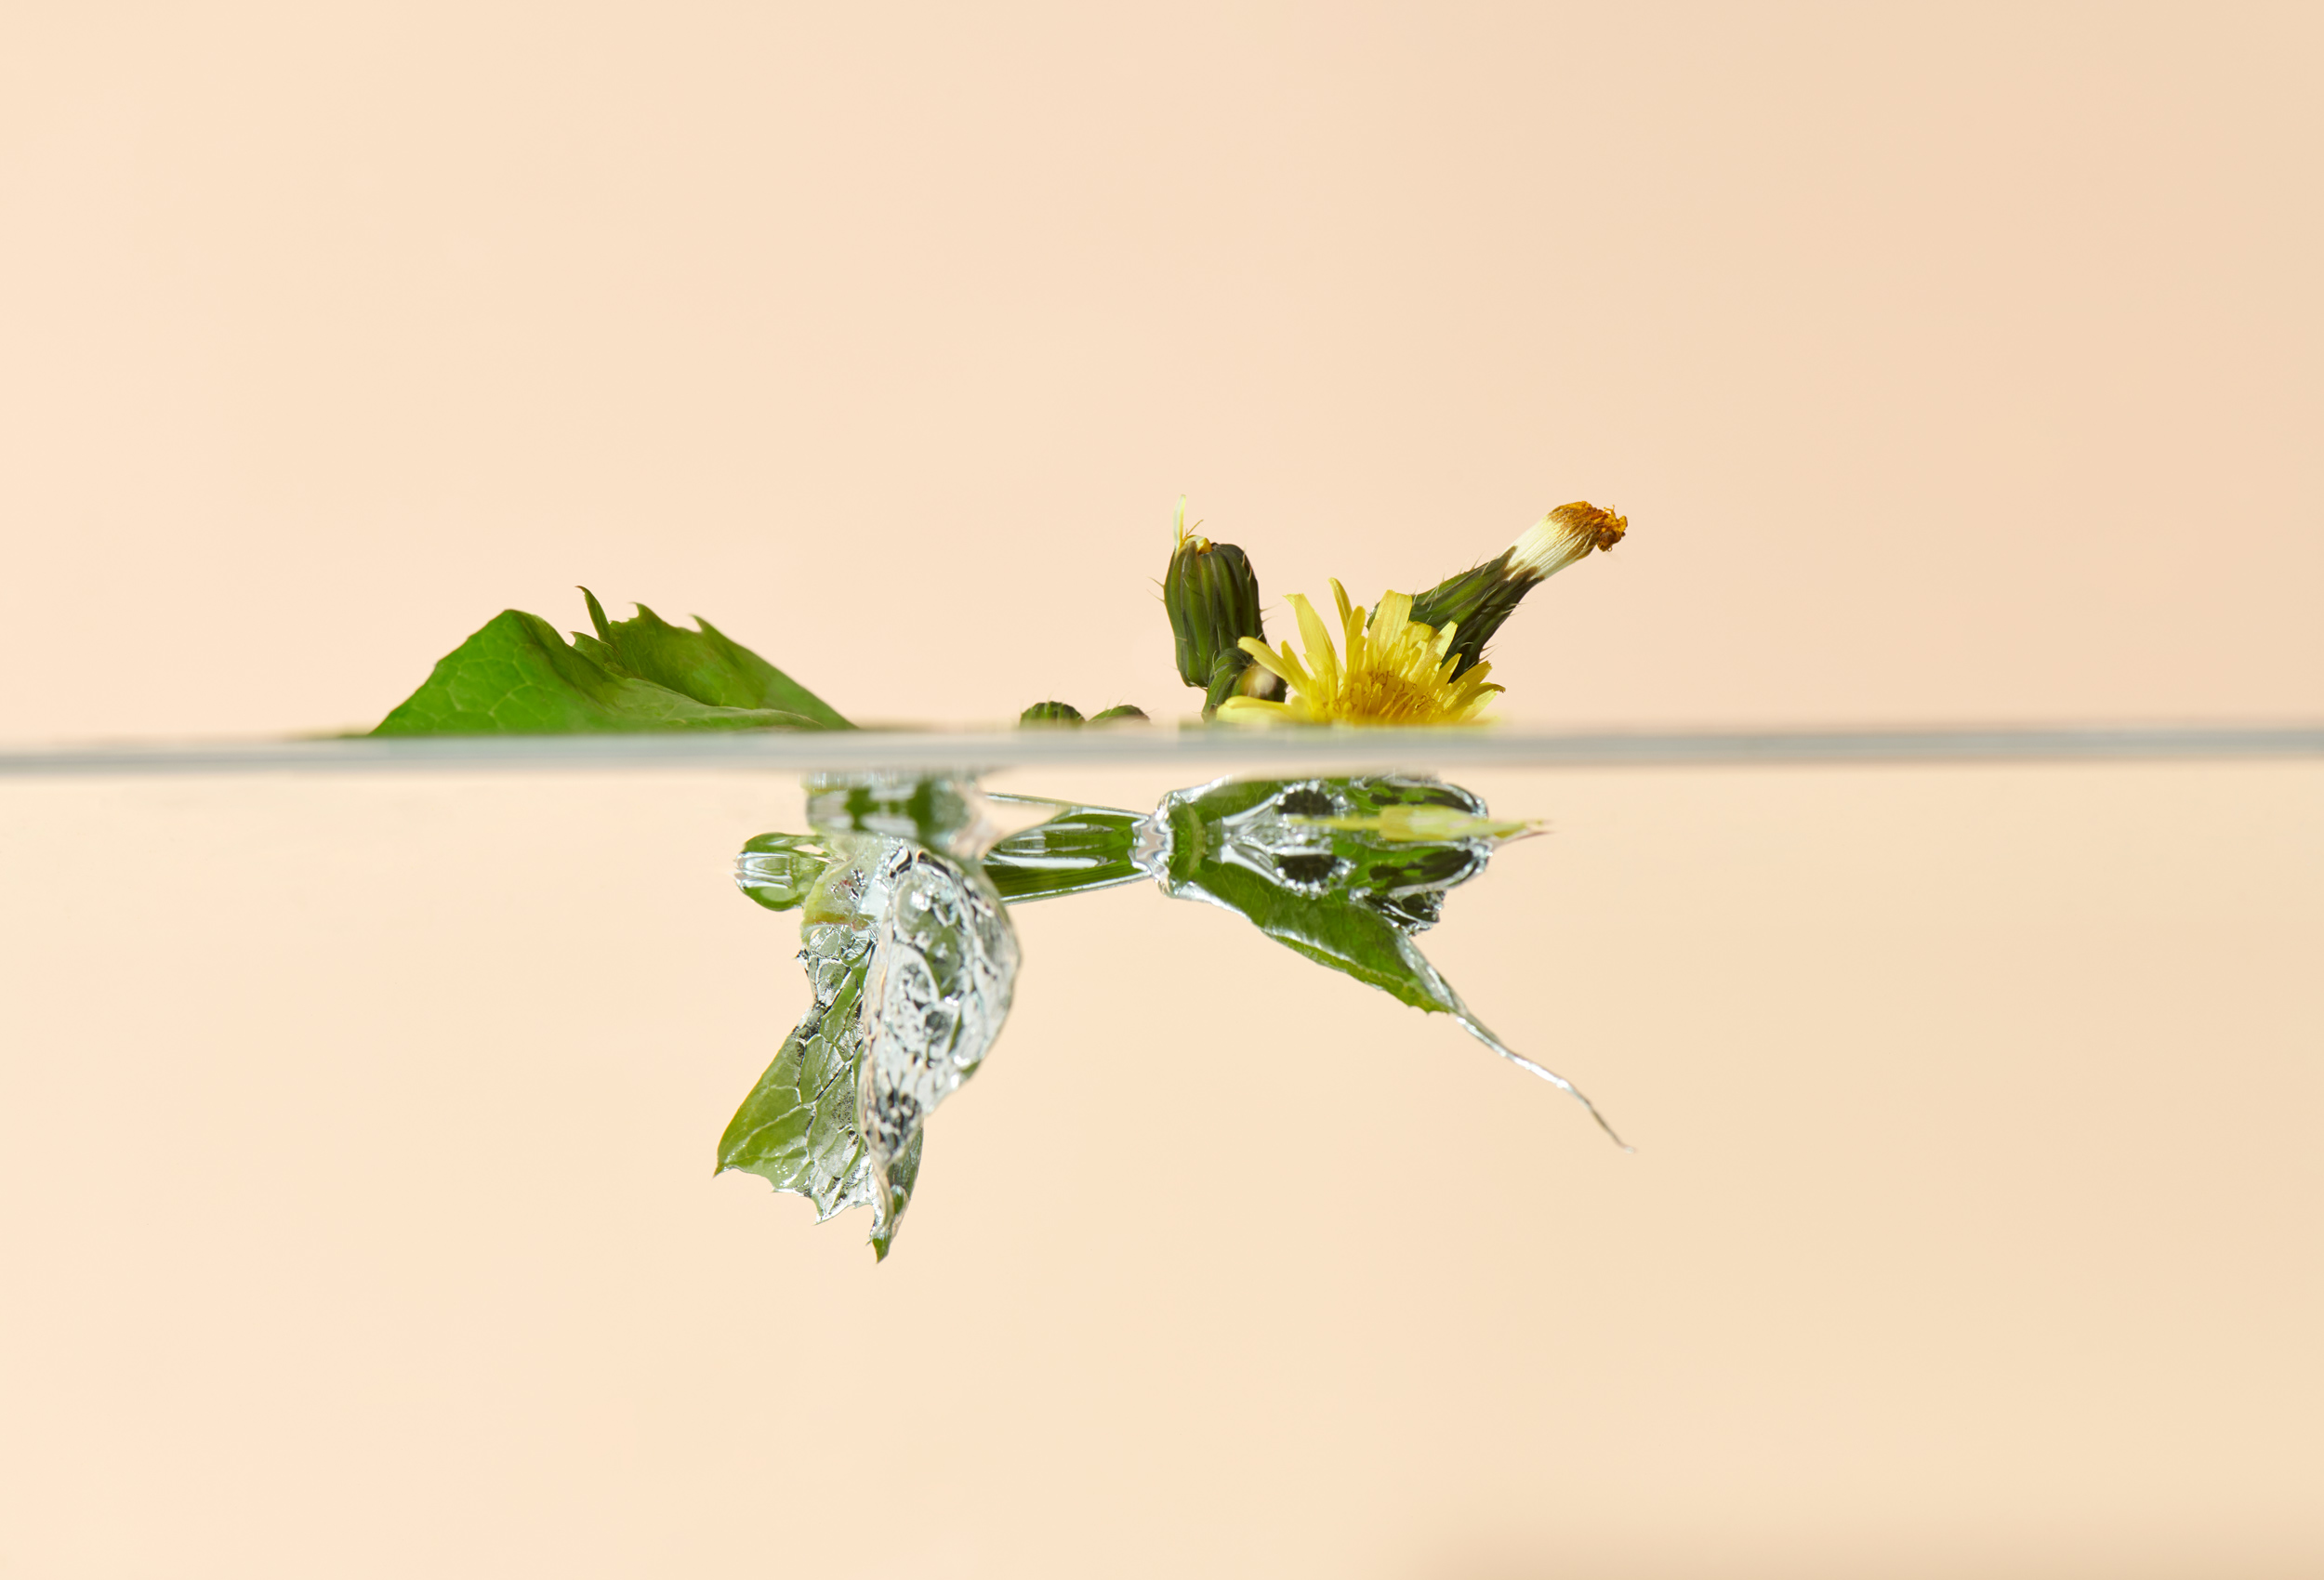 Still Life: Swimming Dandelion